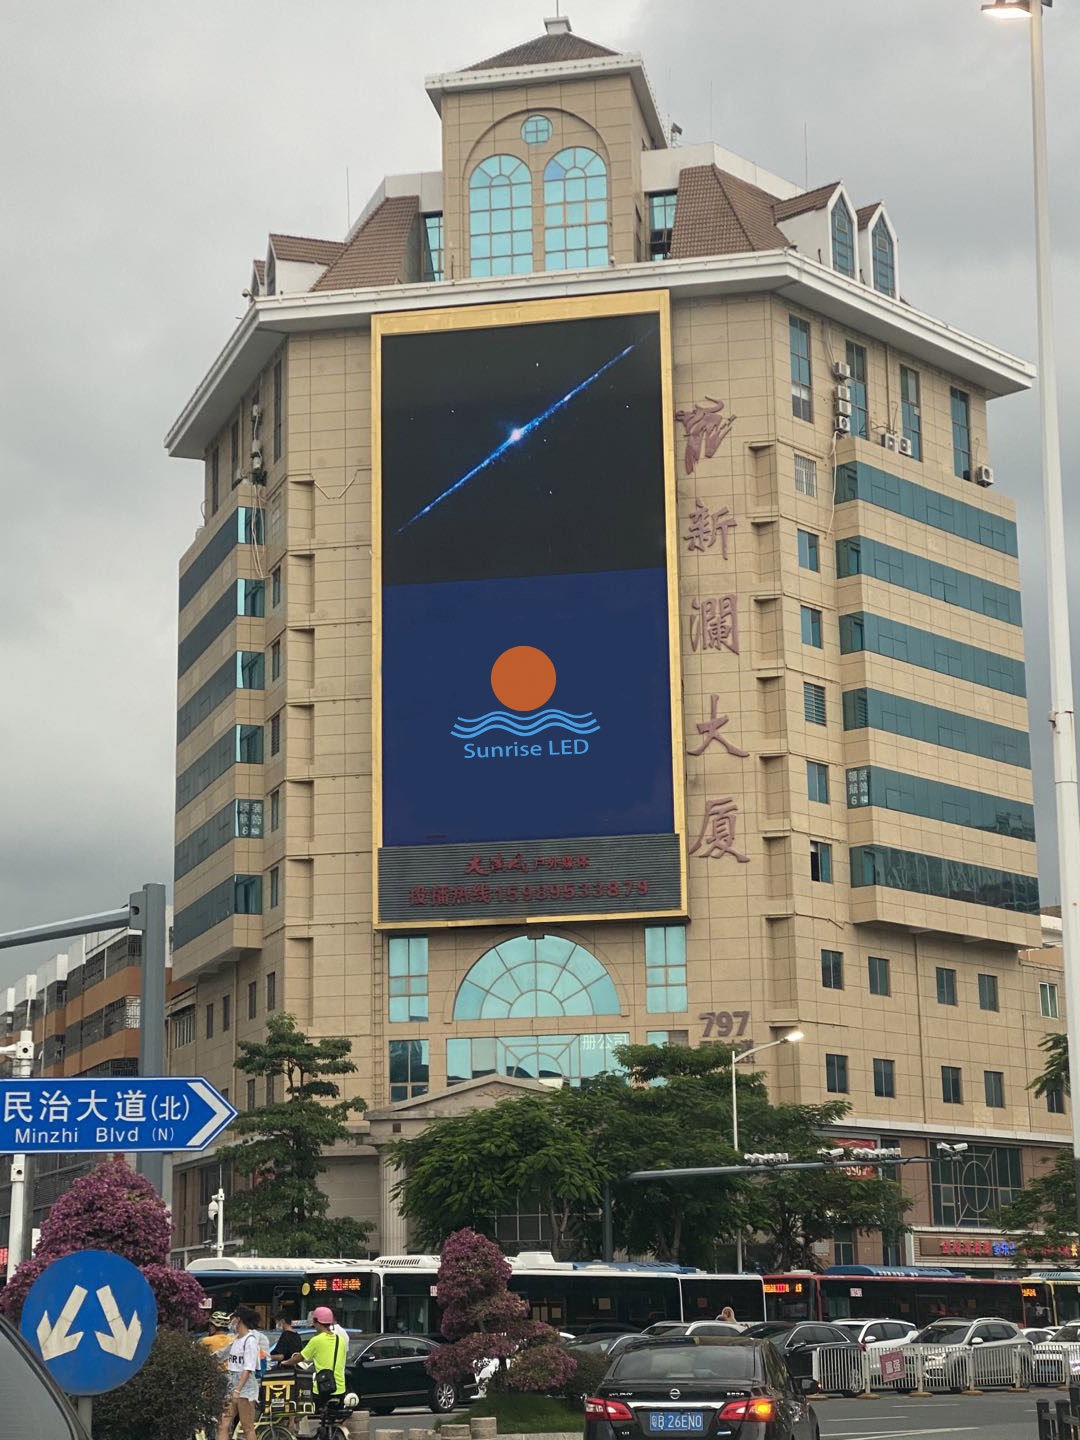 Technology|How can the outdoor LED advertising display be stable and display well